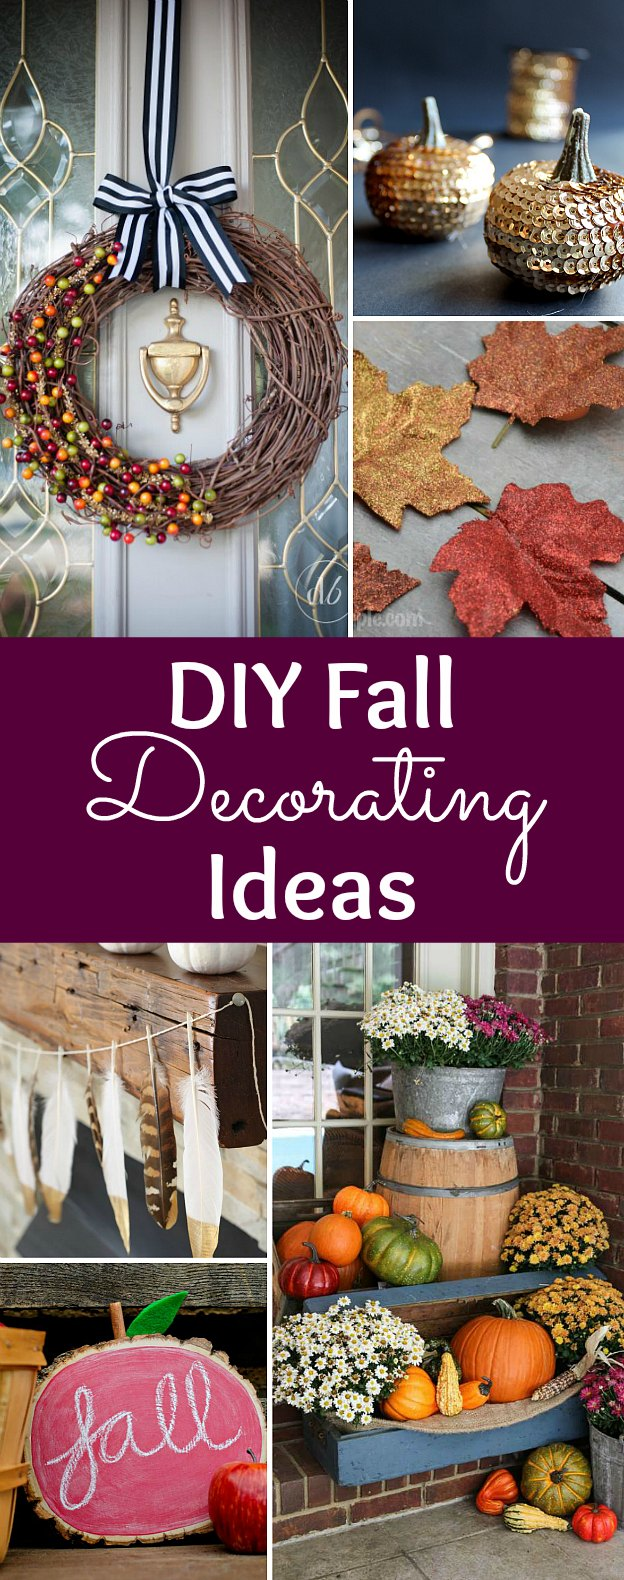 Over 20 DIY Fall Decorating Ideas! Add a touch of autumn to your home with these easy DIY fall decor ideas: wreaths, outdoor, indoor, porch, tablescapes and centerpieces, and more! These simple DIY fall crafts are perfect for homes and apartments ... all on a budget!   Hello Little Home